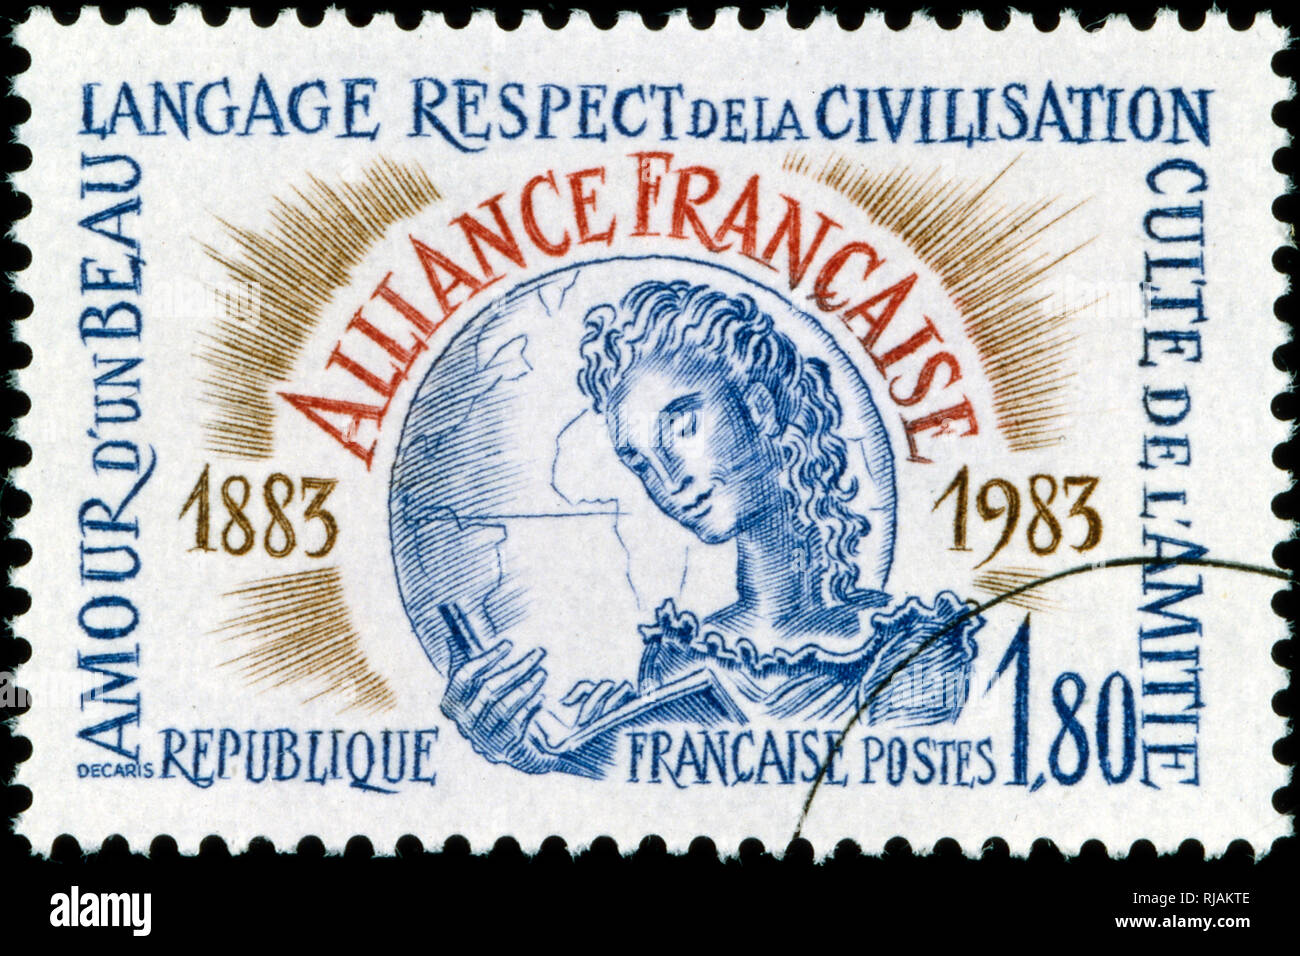 French postage stamp commemorating the Alliance Francaise,  is an international organization that aims to promote French language and culture around the world. 1983 - Stock Image